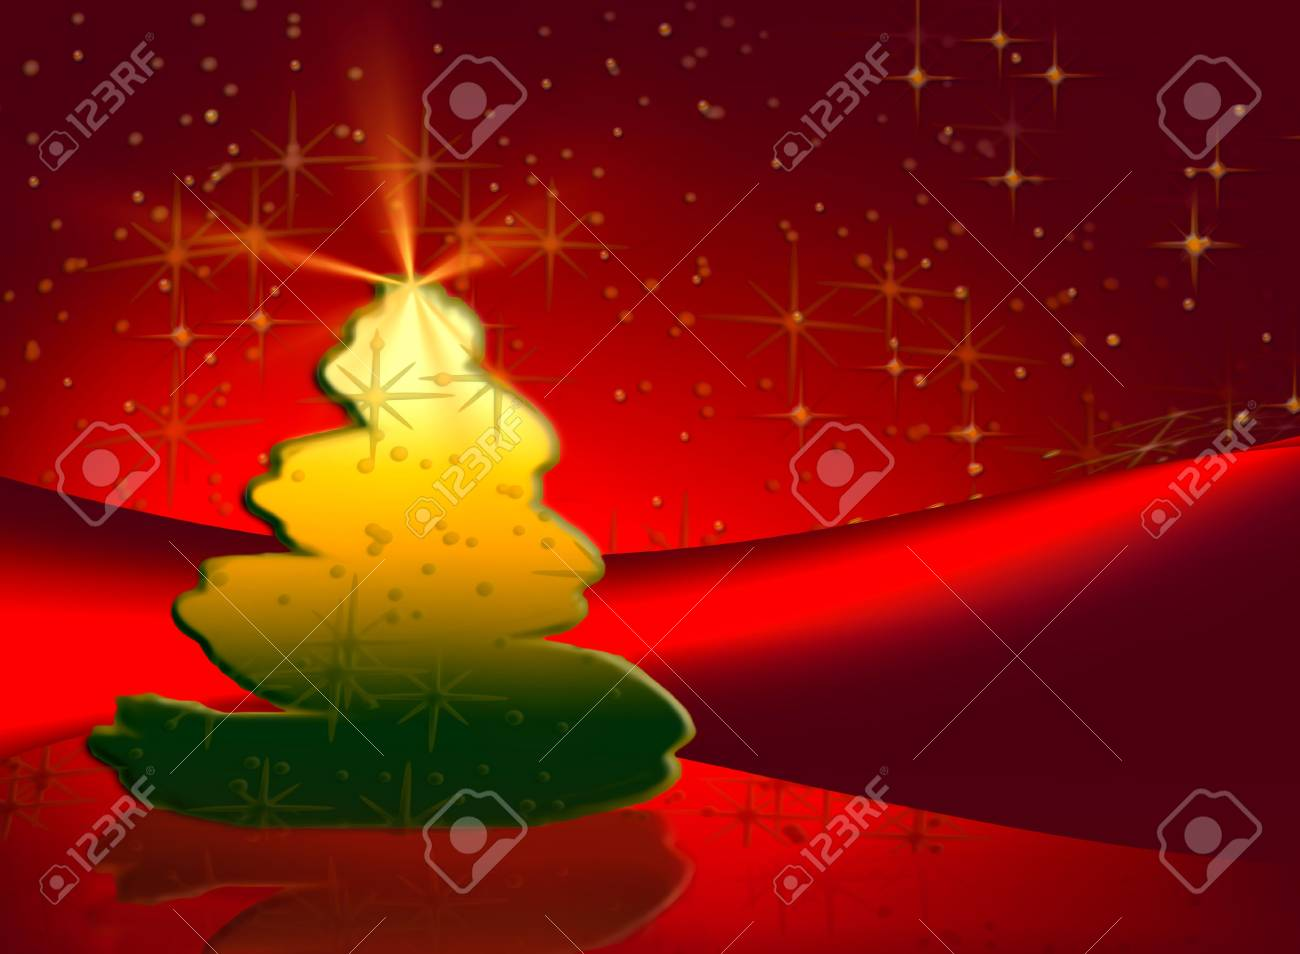 Christmas tree shining in the night, illustration Stock Photo - 3776844